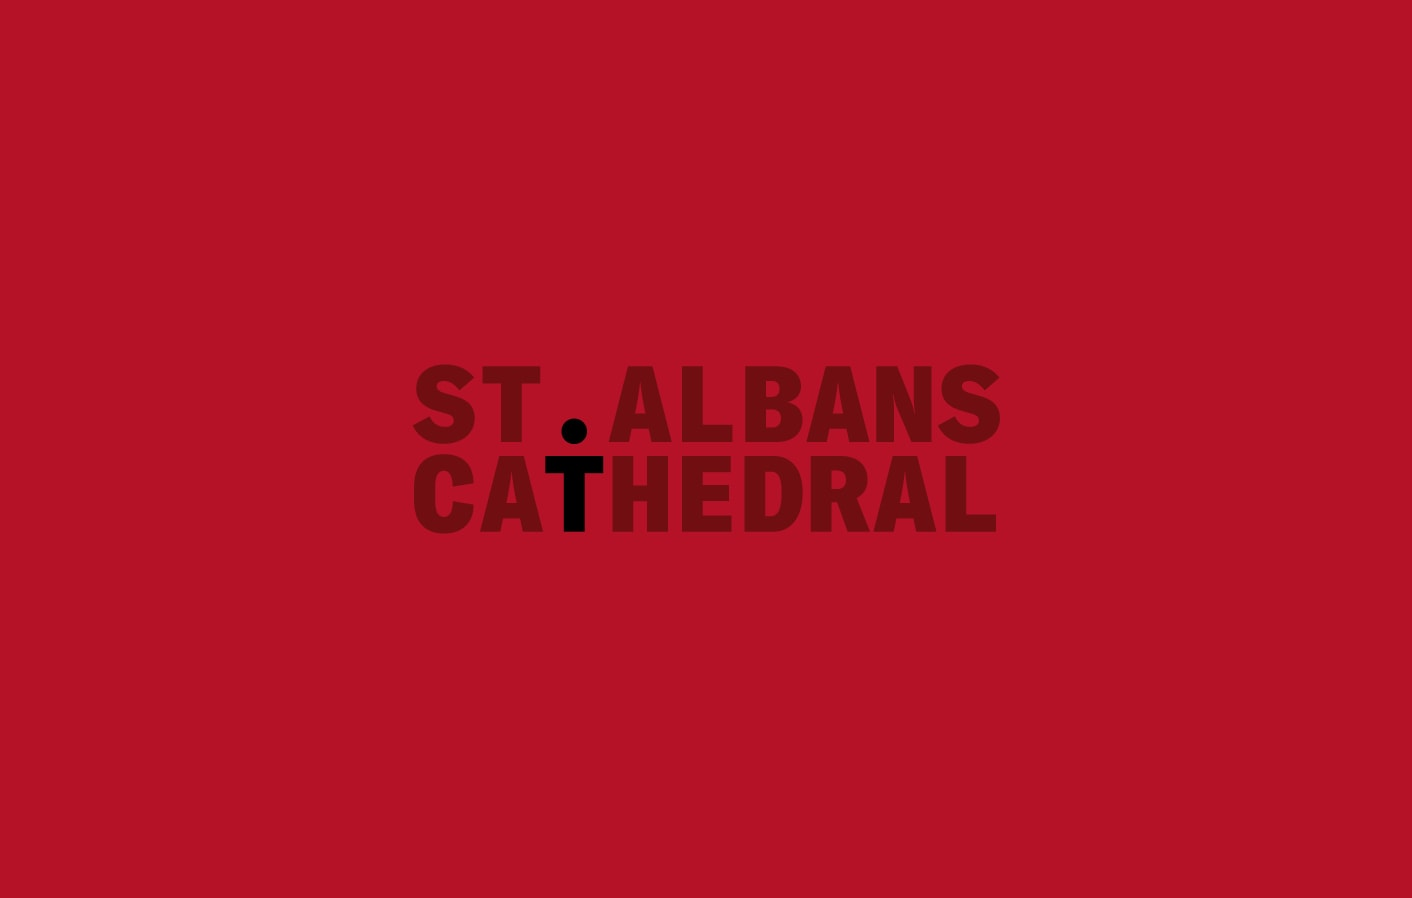 St Albans Cathedral brand identity